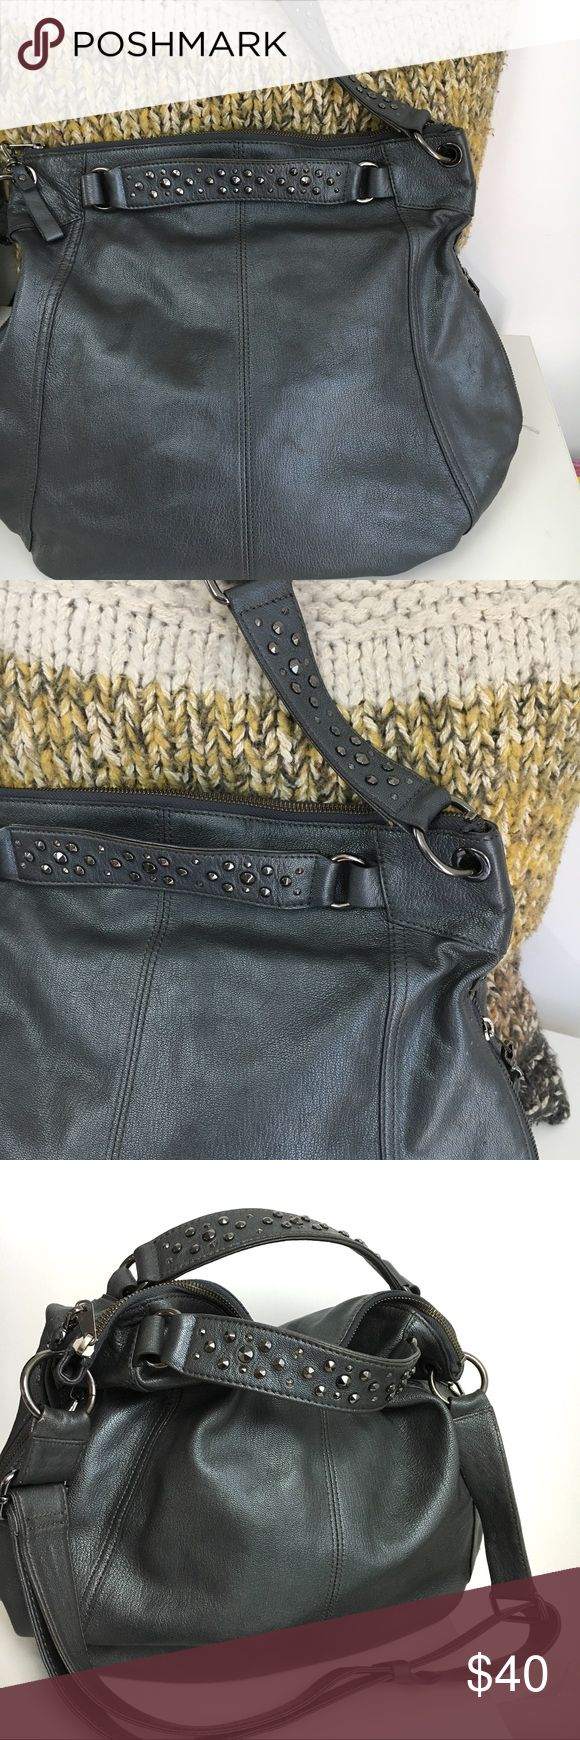 """Banana Republic Alex Hobo CrossBody Bag Banana Republic """"Alex"""" Large Hobo Crossbody Shoulder Bag with Studded Handles and Adjustable Strap.   Height 16"""" Width 15"""" Gorgeous Color is Gunmetal with a faint shimmer. Made of premium soft Goatskin leather."""" There is an area of multiple tiny nicks on front and back(shown) otherwise nice clean condition.  Please ask any questions before purchase.  👍OFFERS Welcome 🚫no trades pls Banana Republic Bags Hobos"""